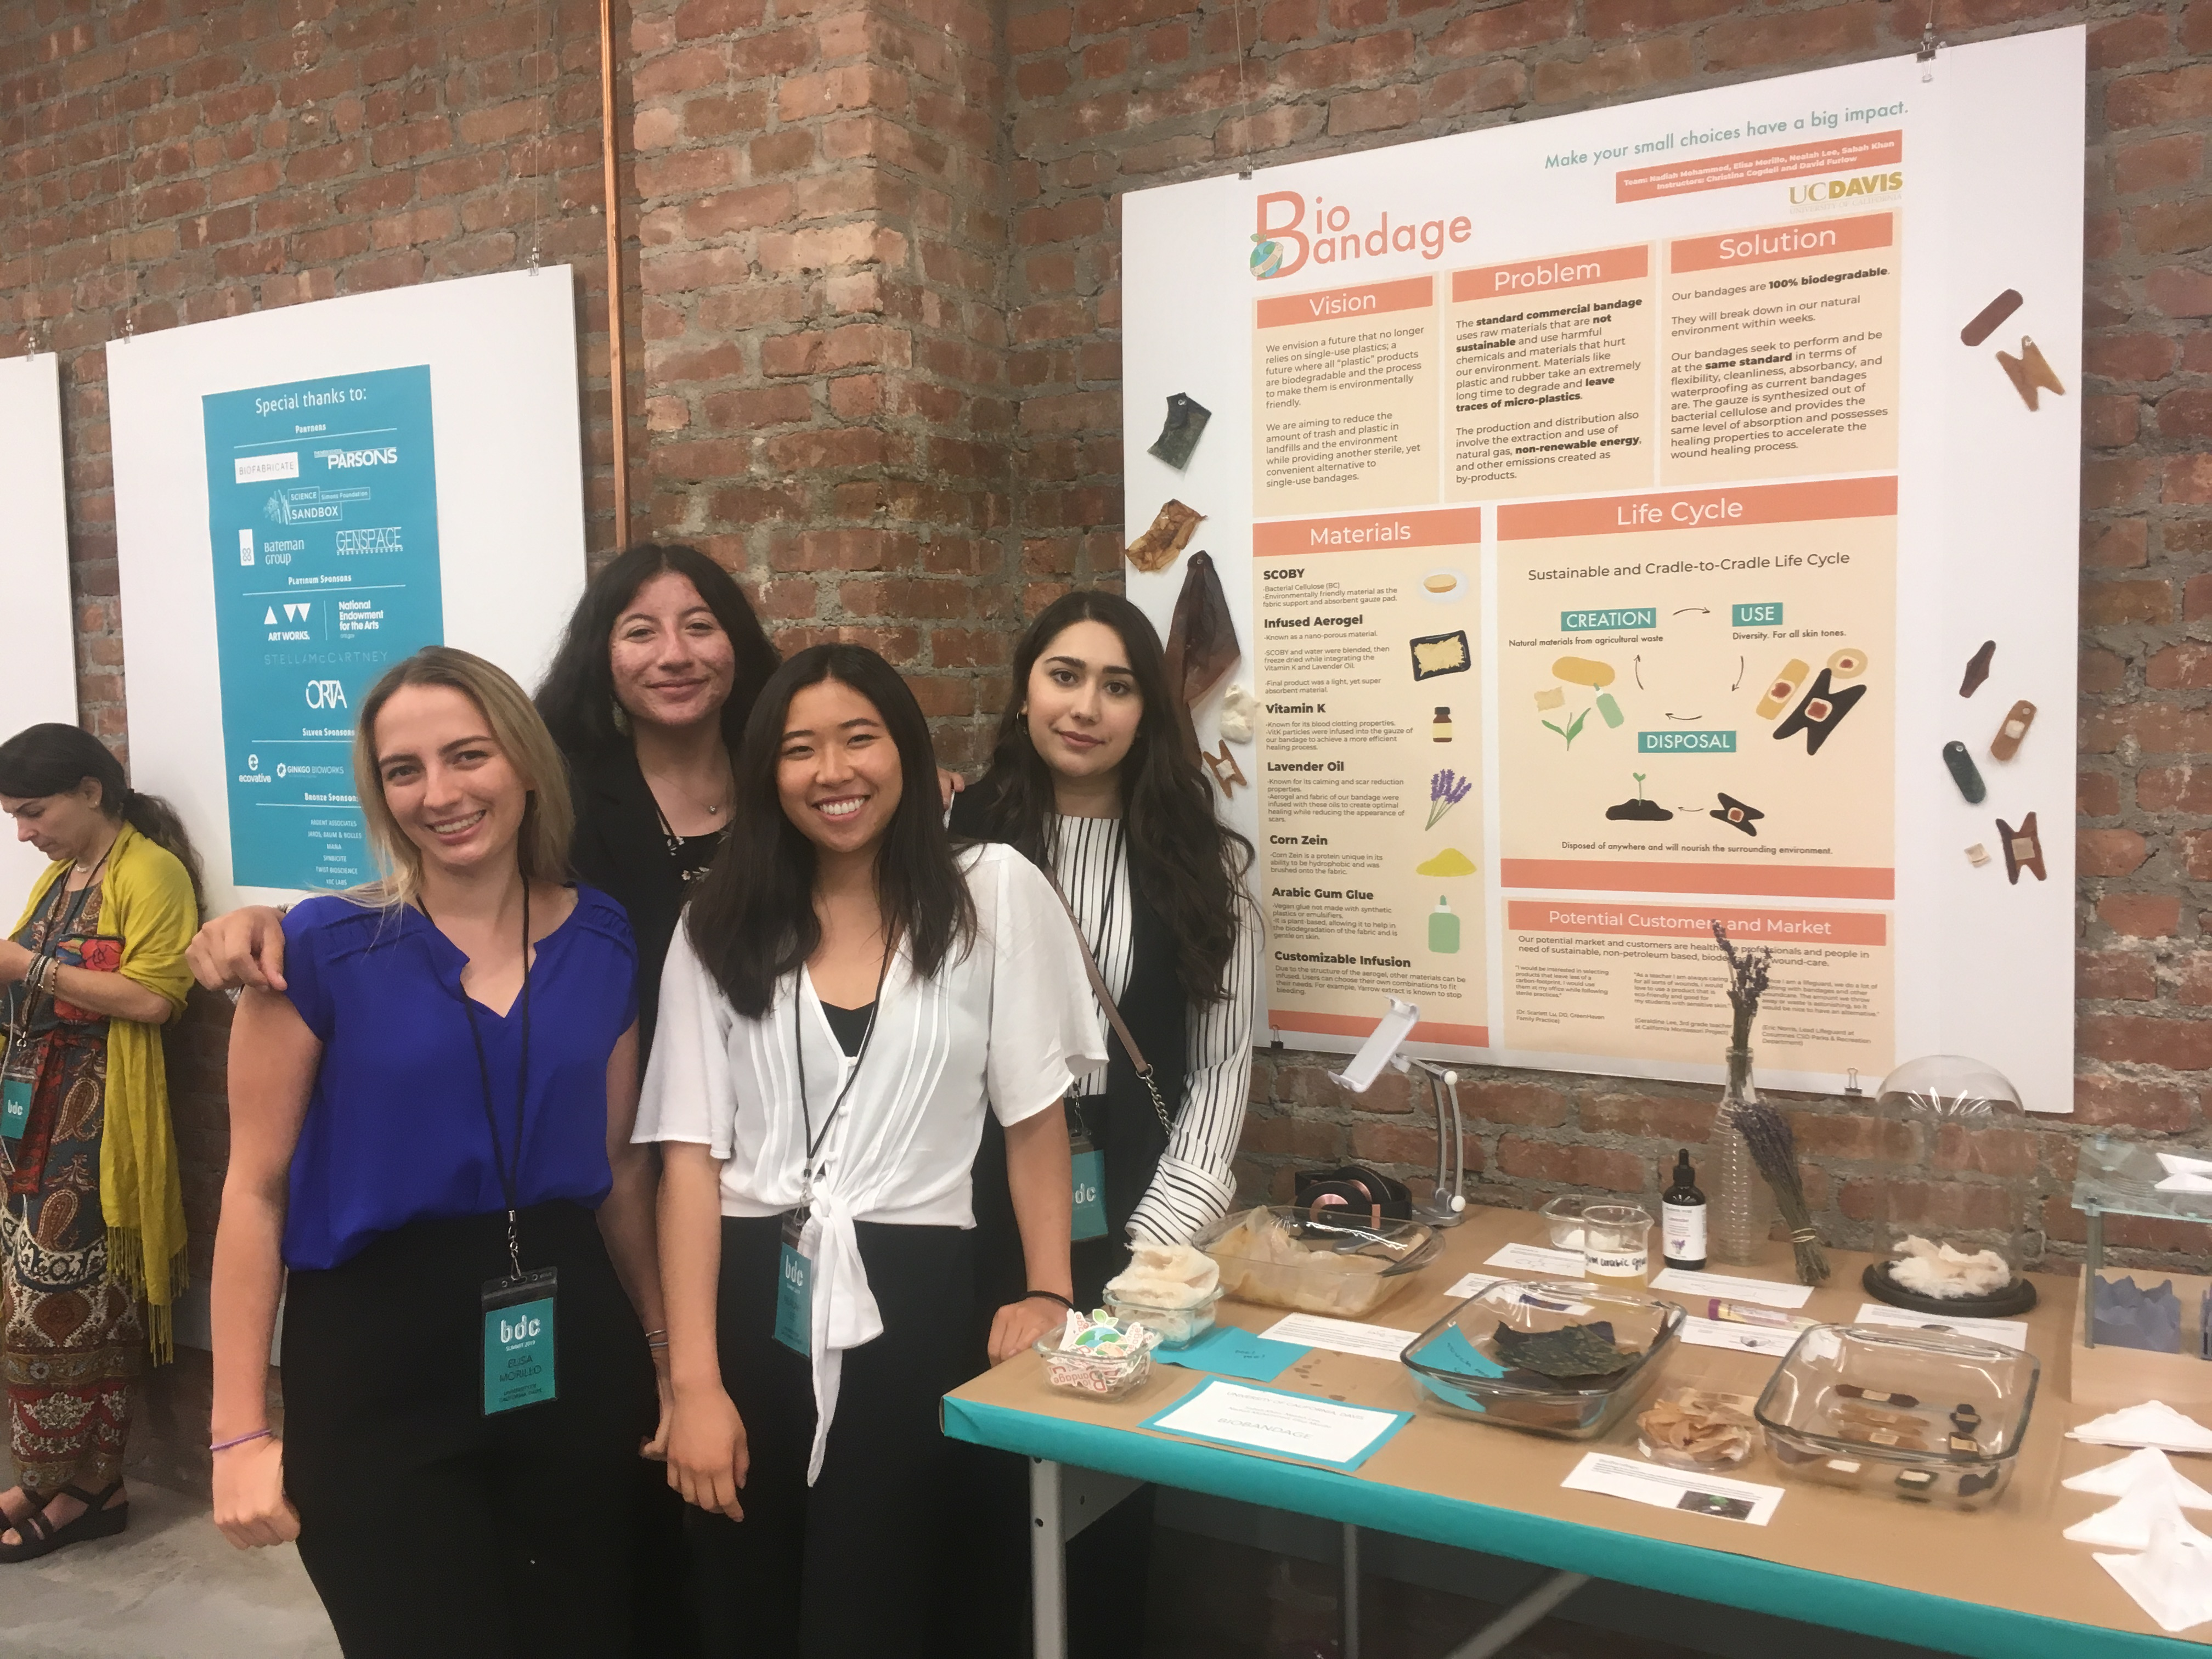 The 2019 BioDesign team gallery. From left to right: Elisa Morillo, Nadiah Mohammed, Nealah Lee, and Sabah Khan.